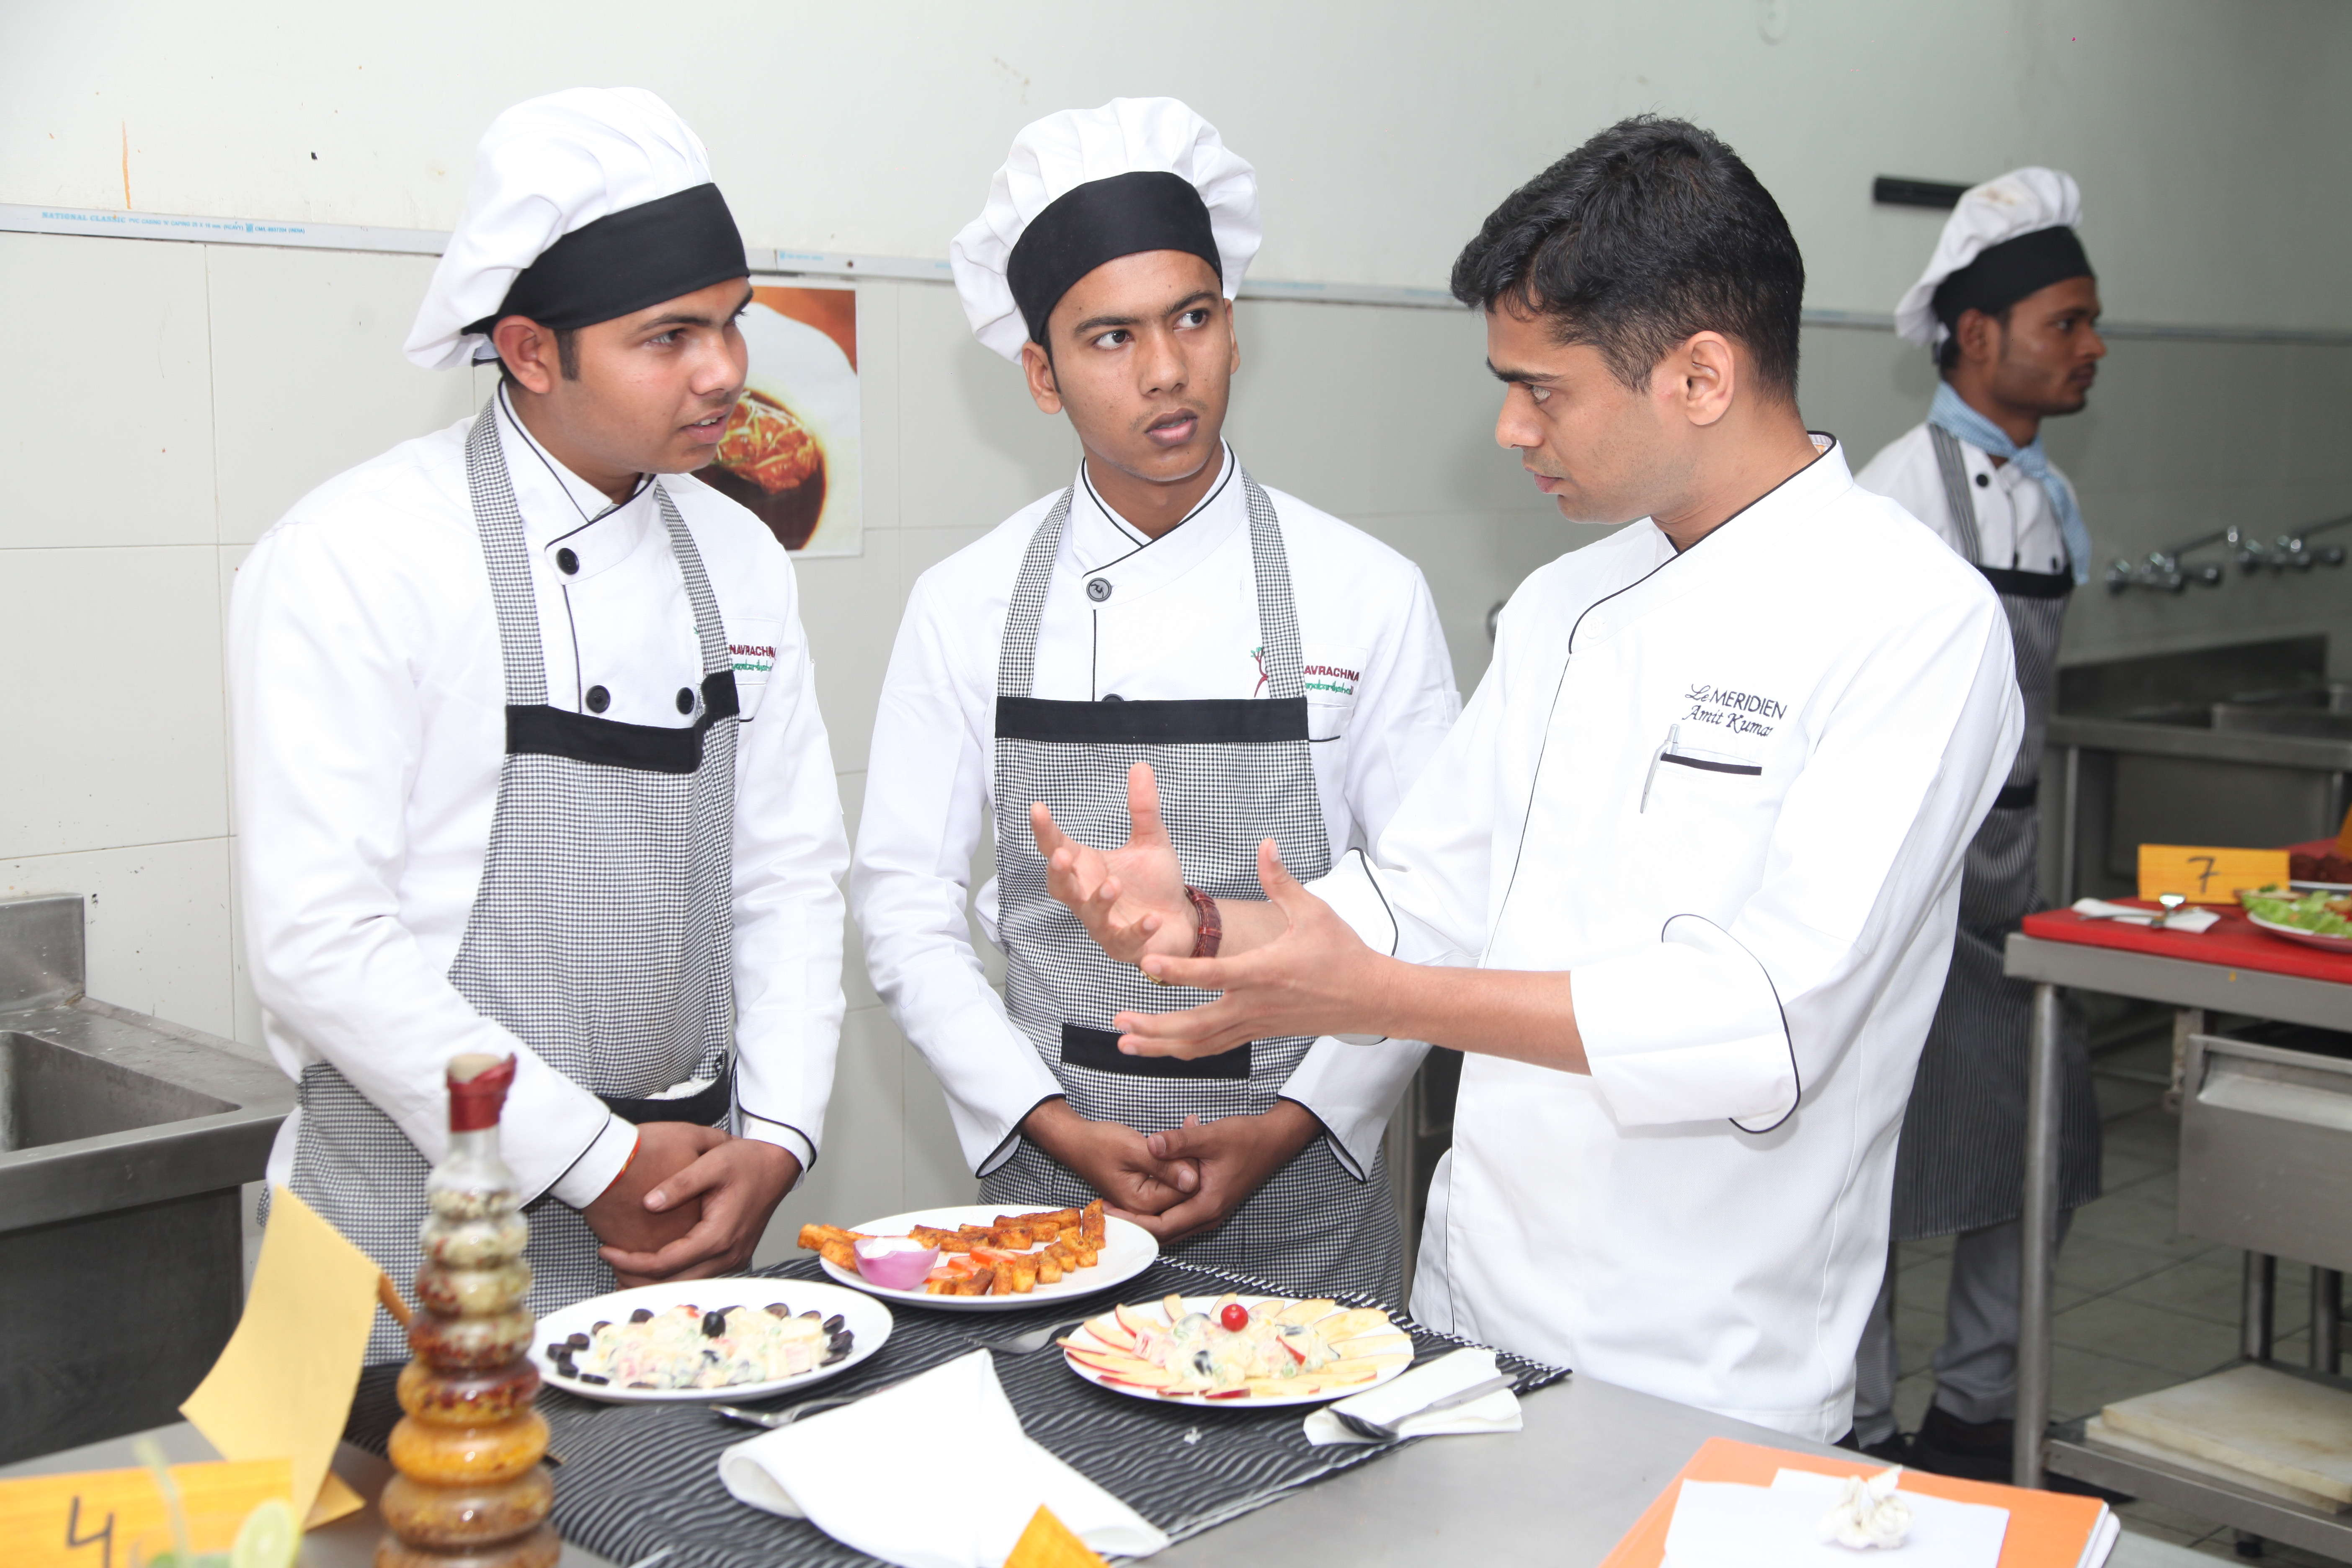 What are the career prospects for a Hospitality professional in the post-Covid world